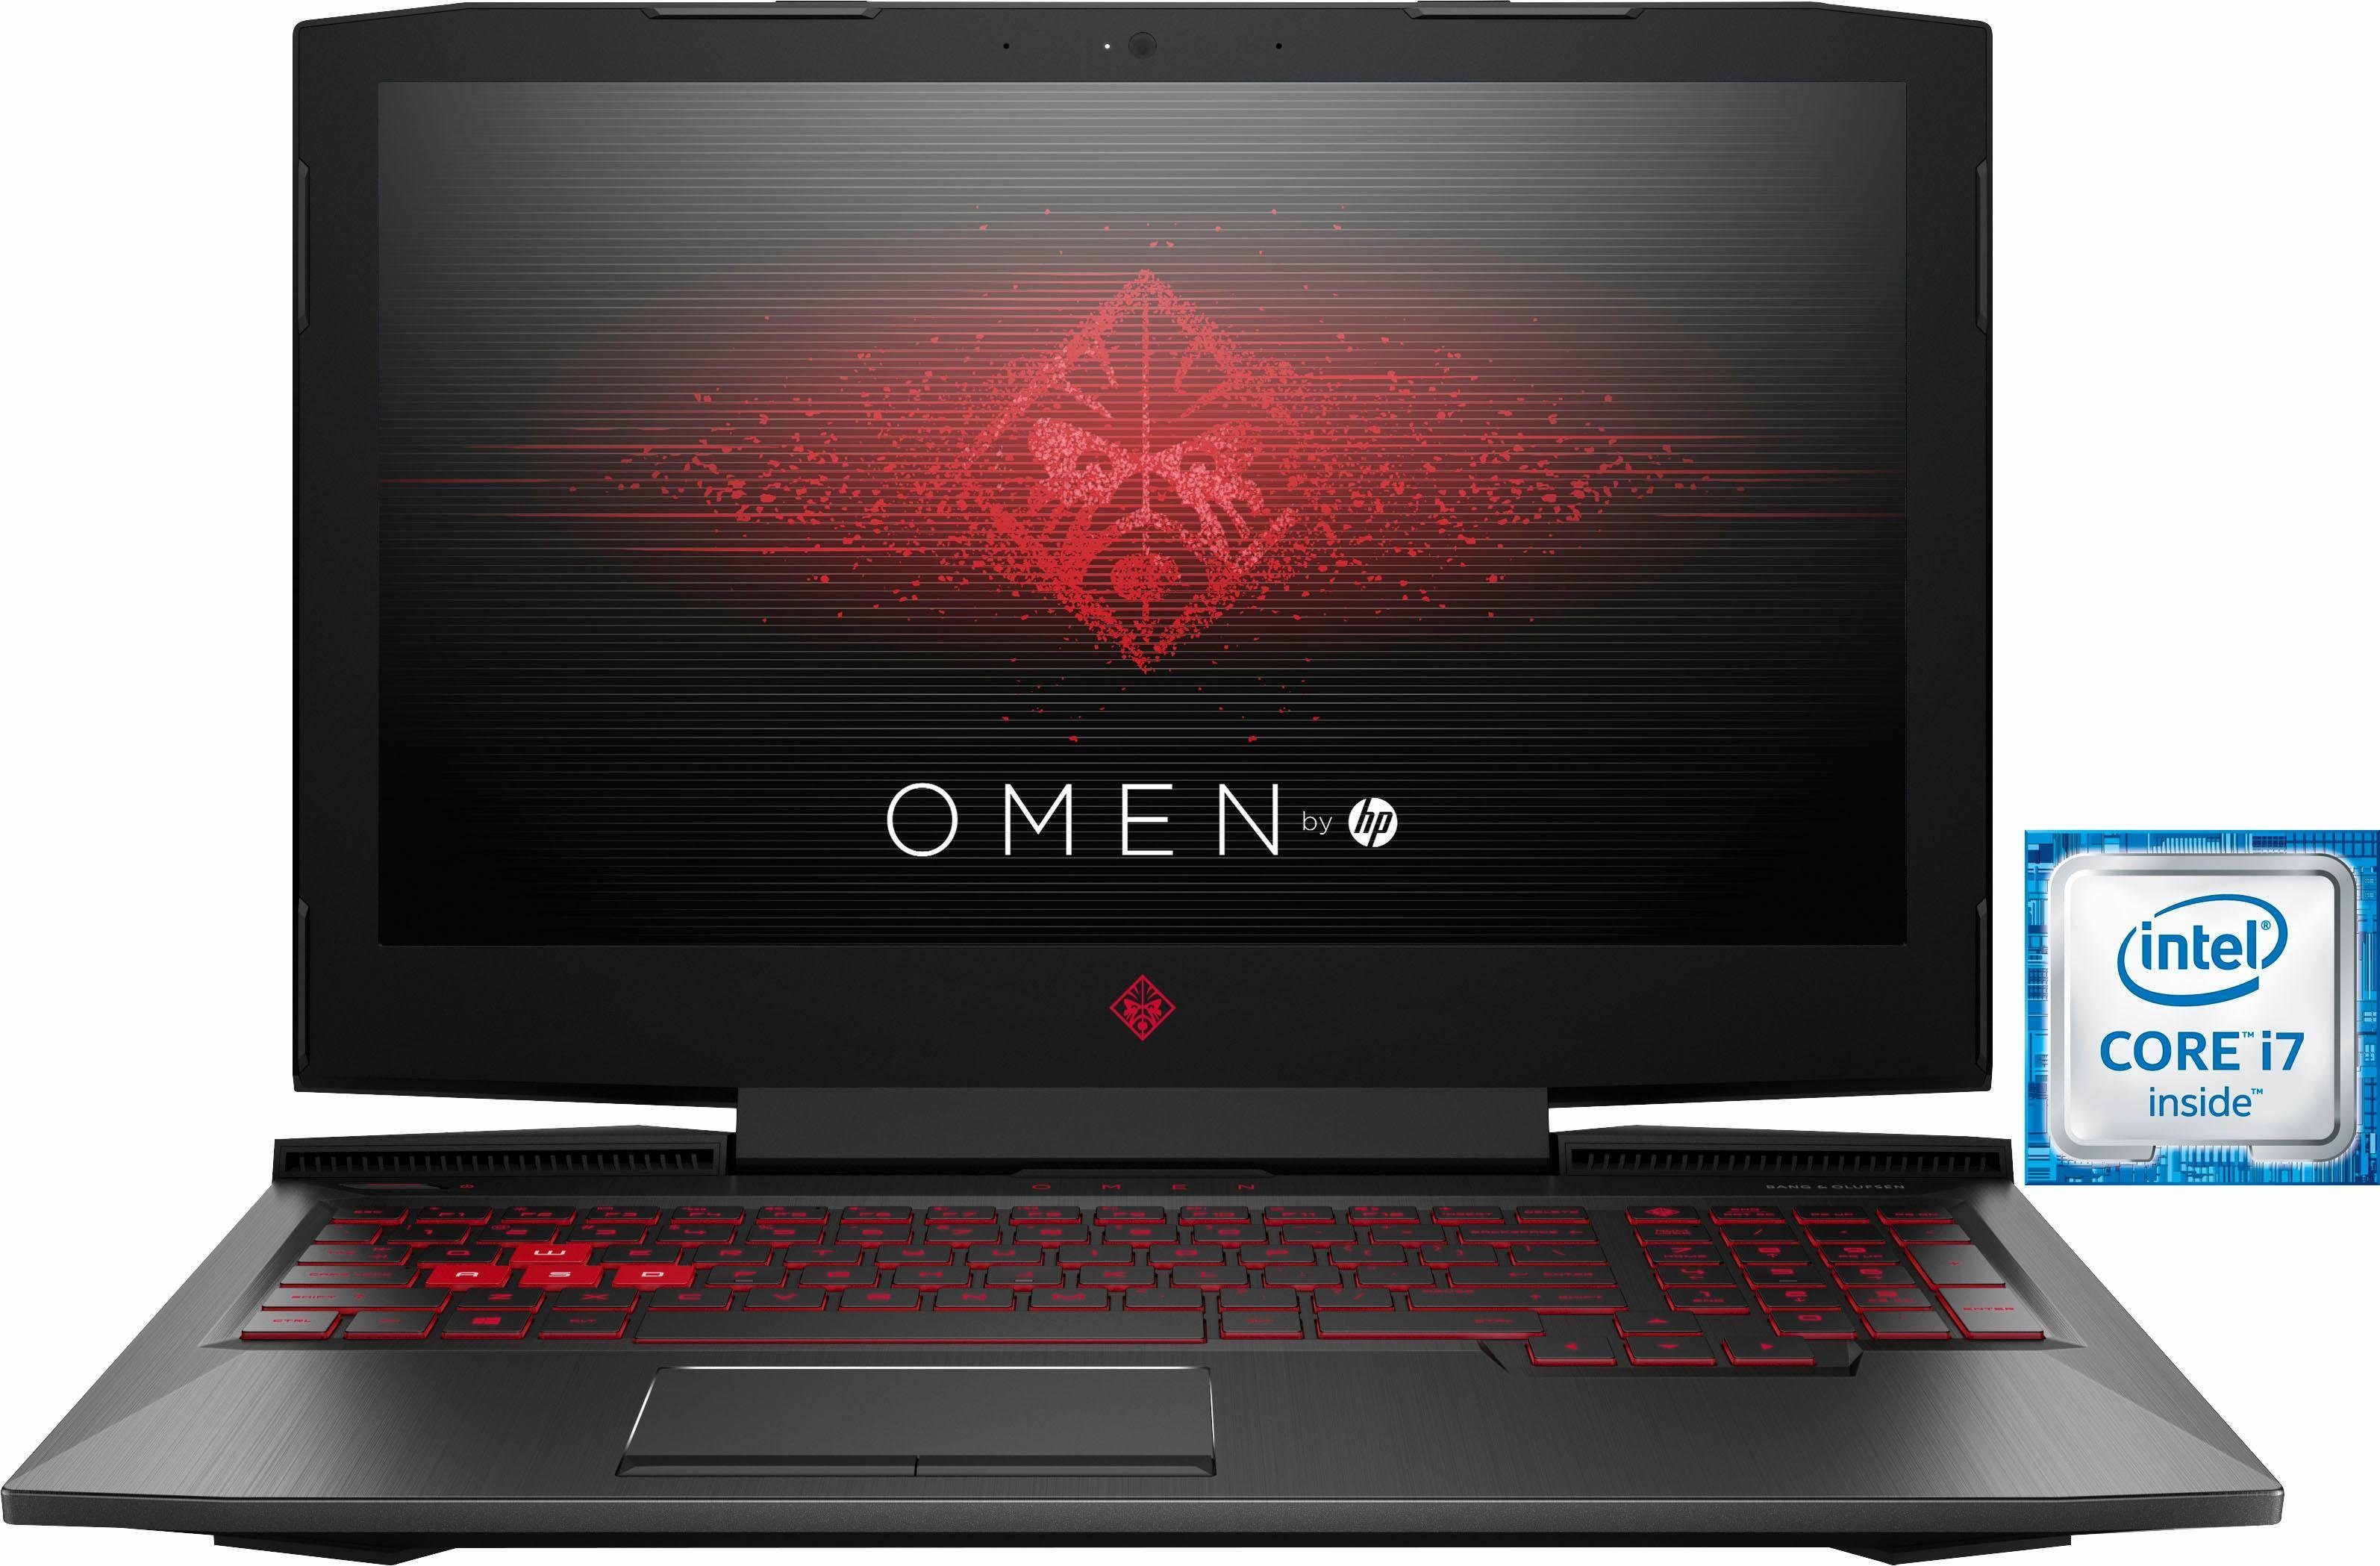 HP OMEN by HP 15-ce018ng Gaming-Notebook (39,6 cm/15,6 Zoll, Intel Core i7, GeForce GTX 1050, 1000 GB HDD)